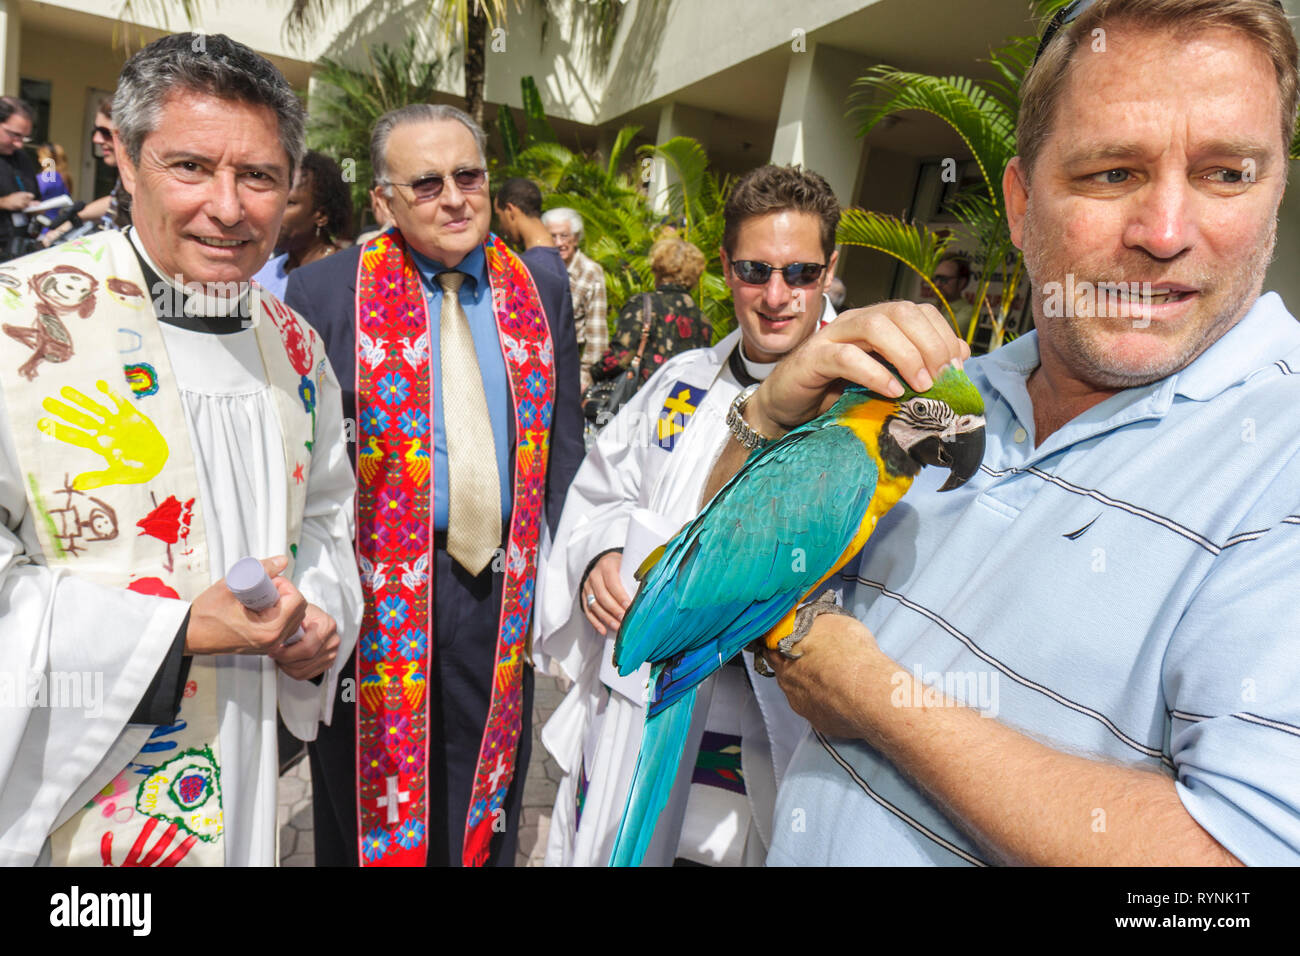 Florida Fl South Miami Temple Israel Bow Wow Palooza Interfaith Blessing Of The Animals Community Event Owner Parrot Bird Pet Animal Clerg Stock Photo Alamy